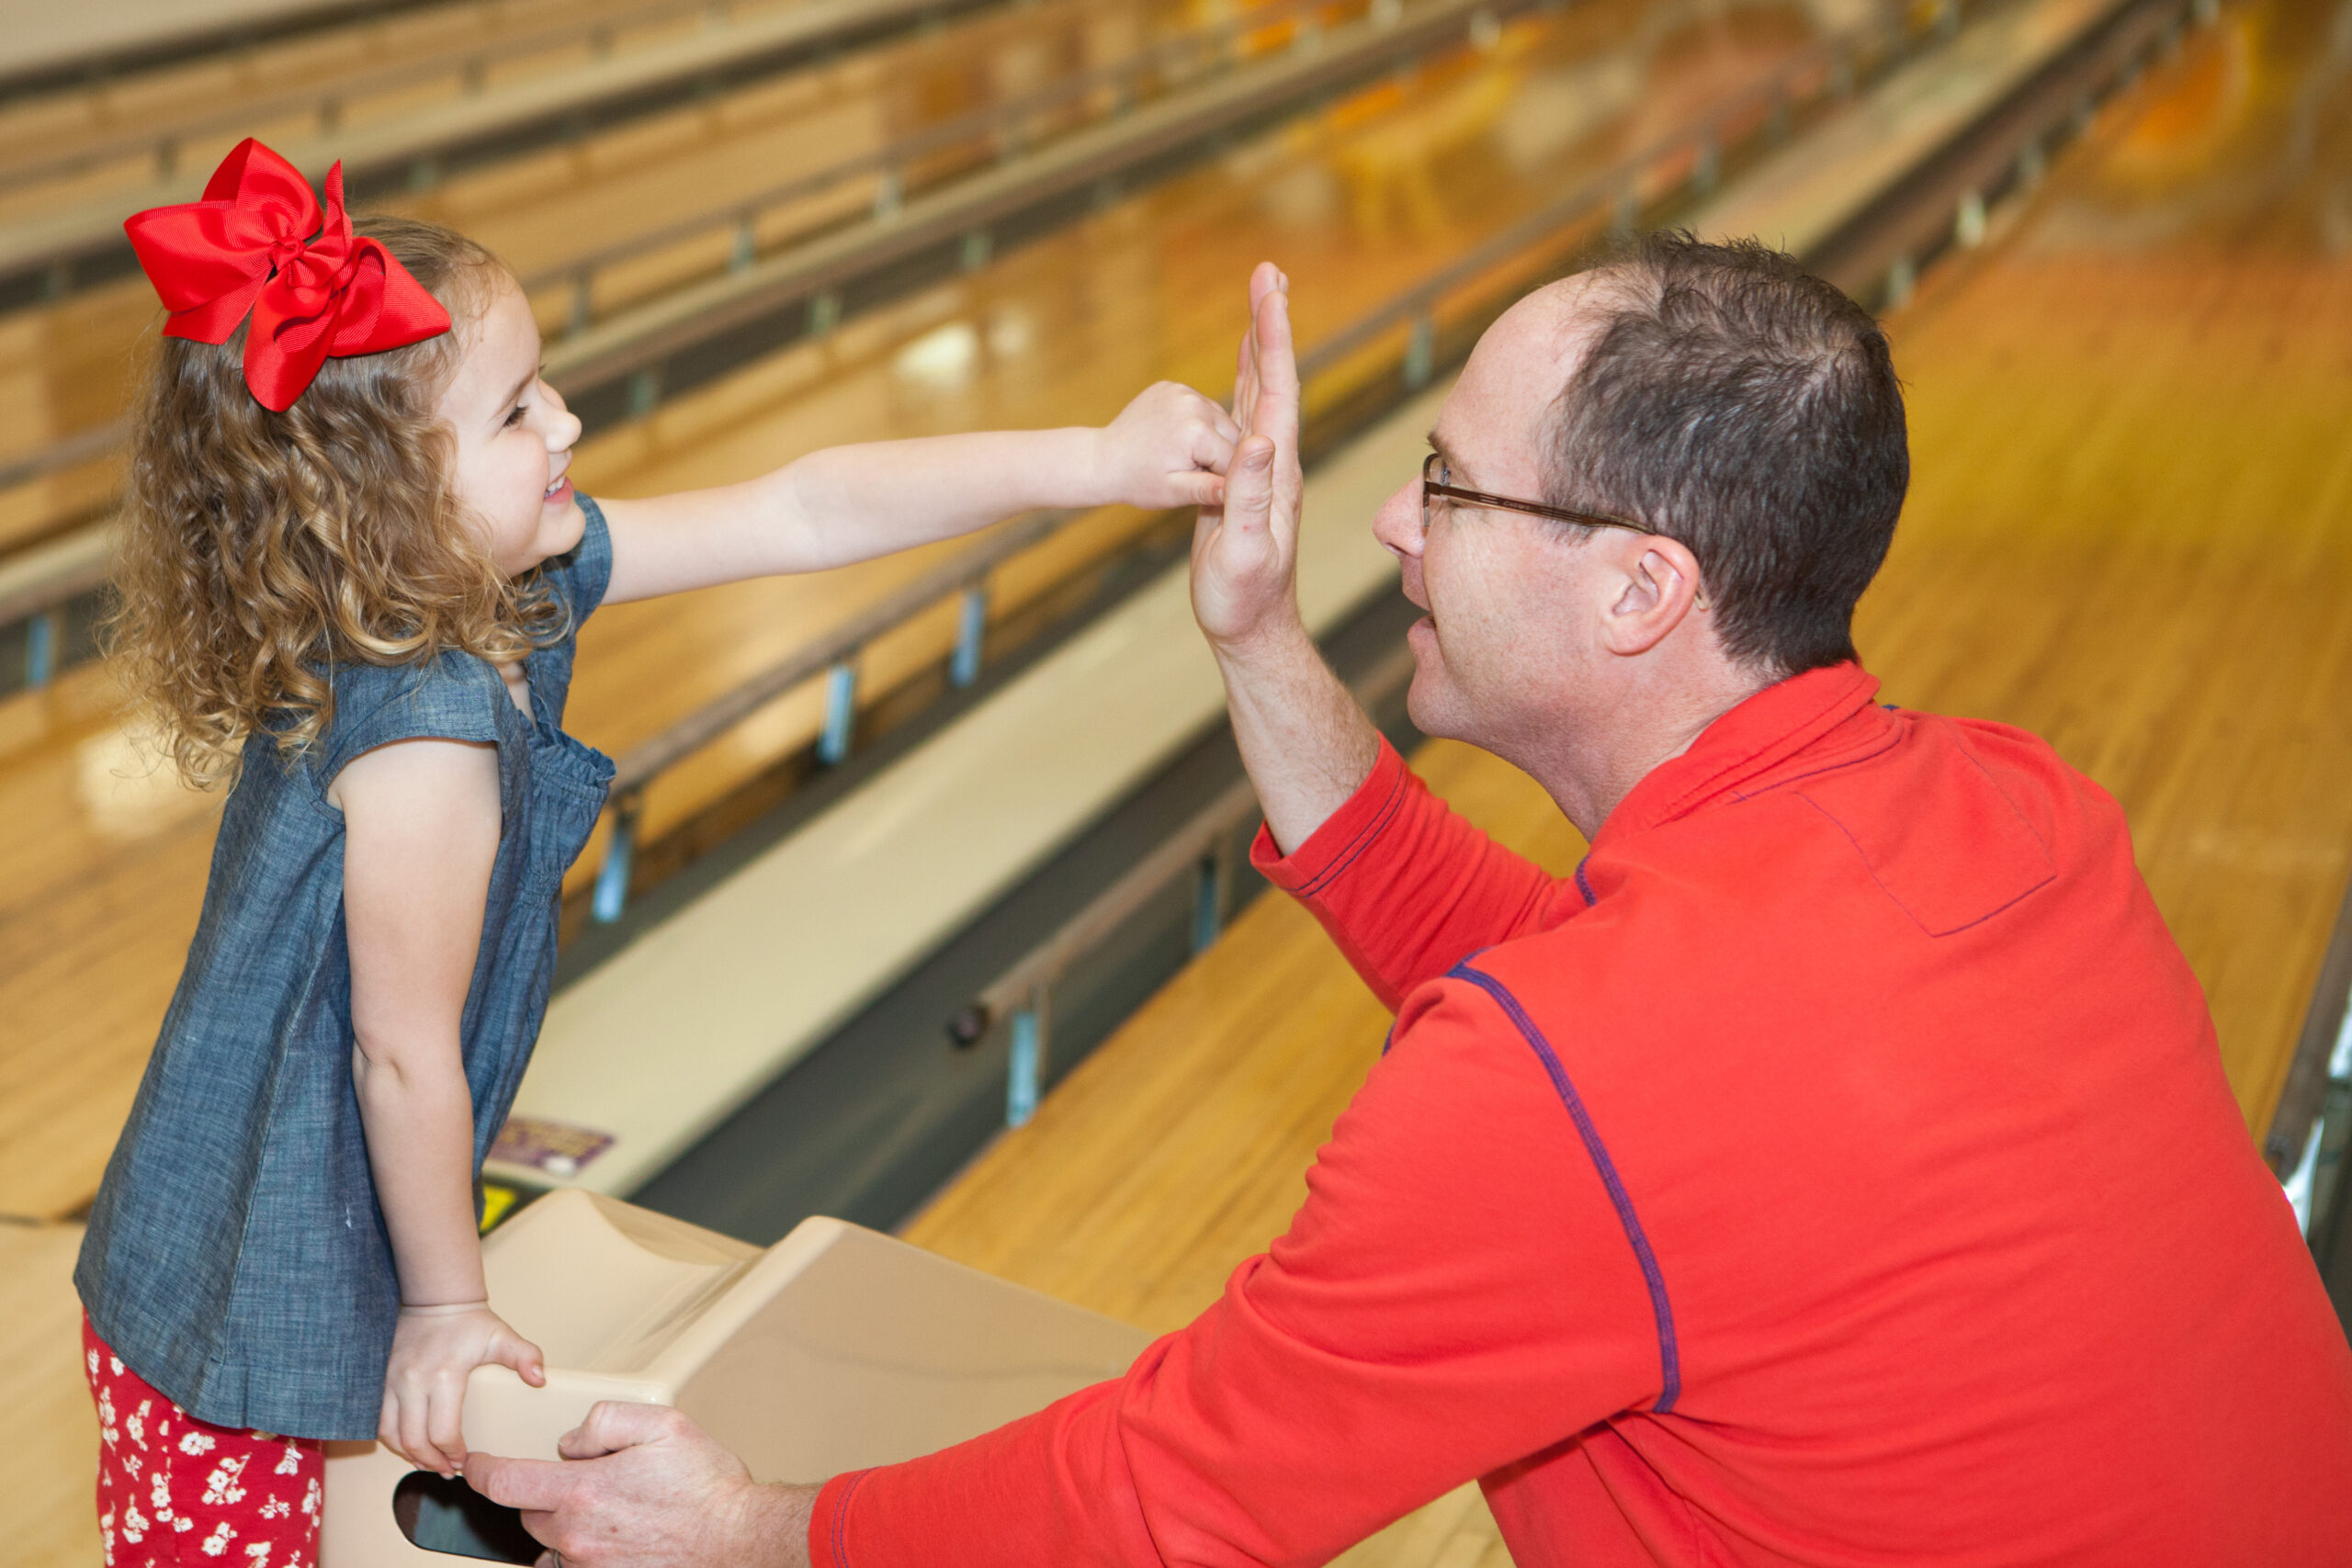 Little Girl giving dad a high 5 after bowling with a ramp and using bumpers